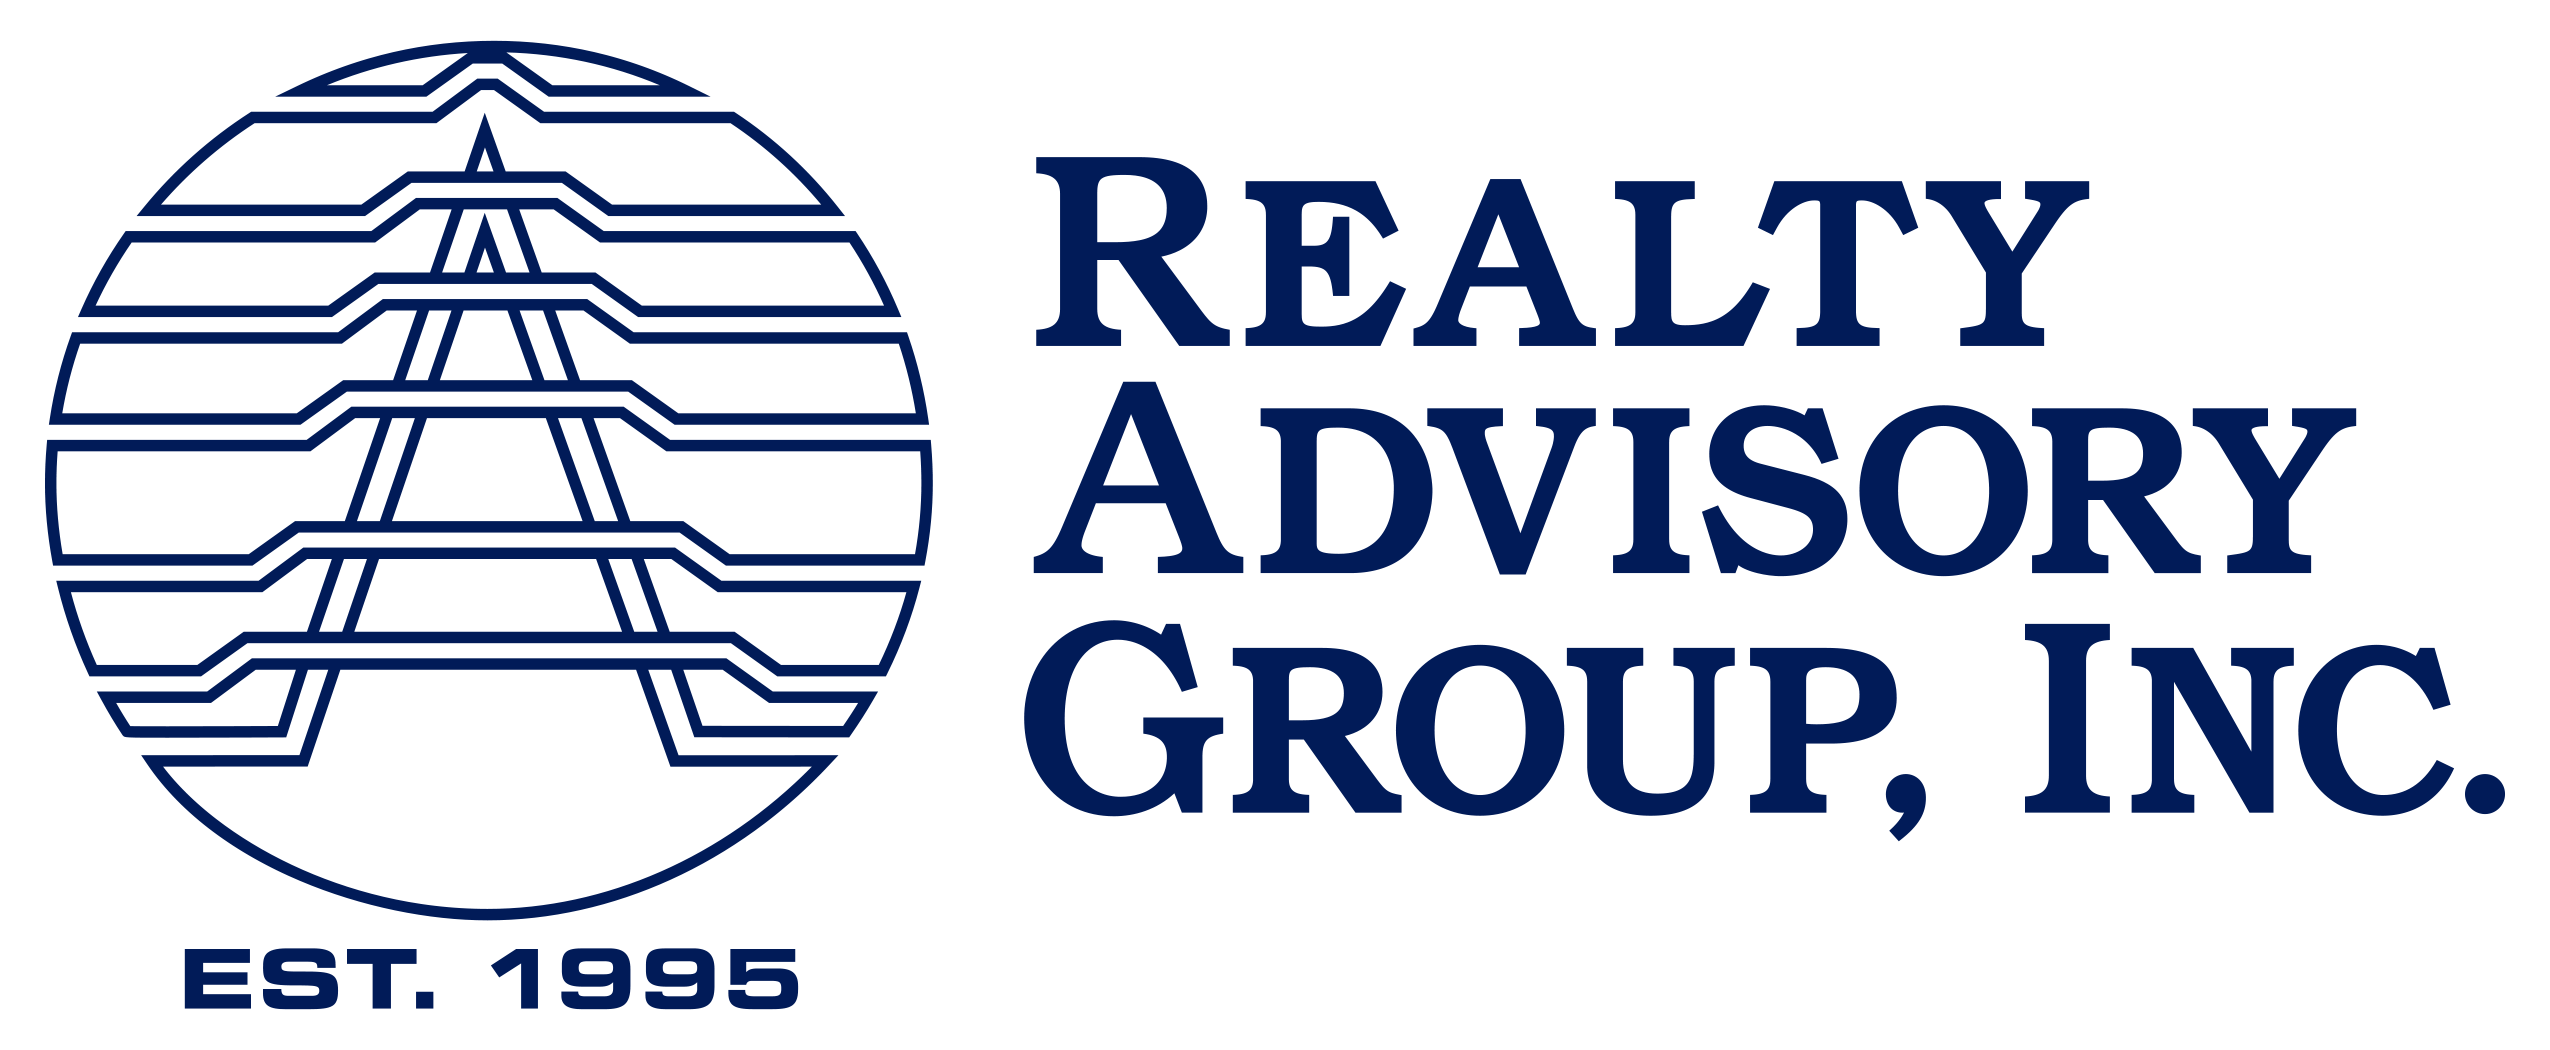 Realty Advisory Group, Inc.